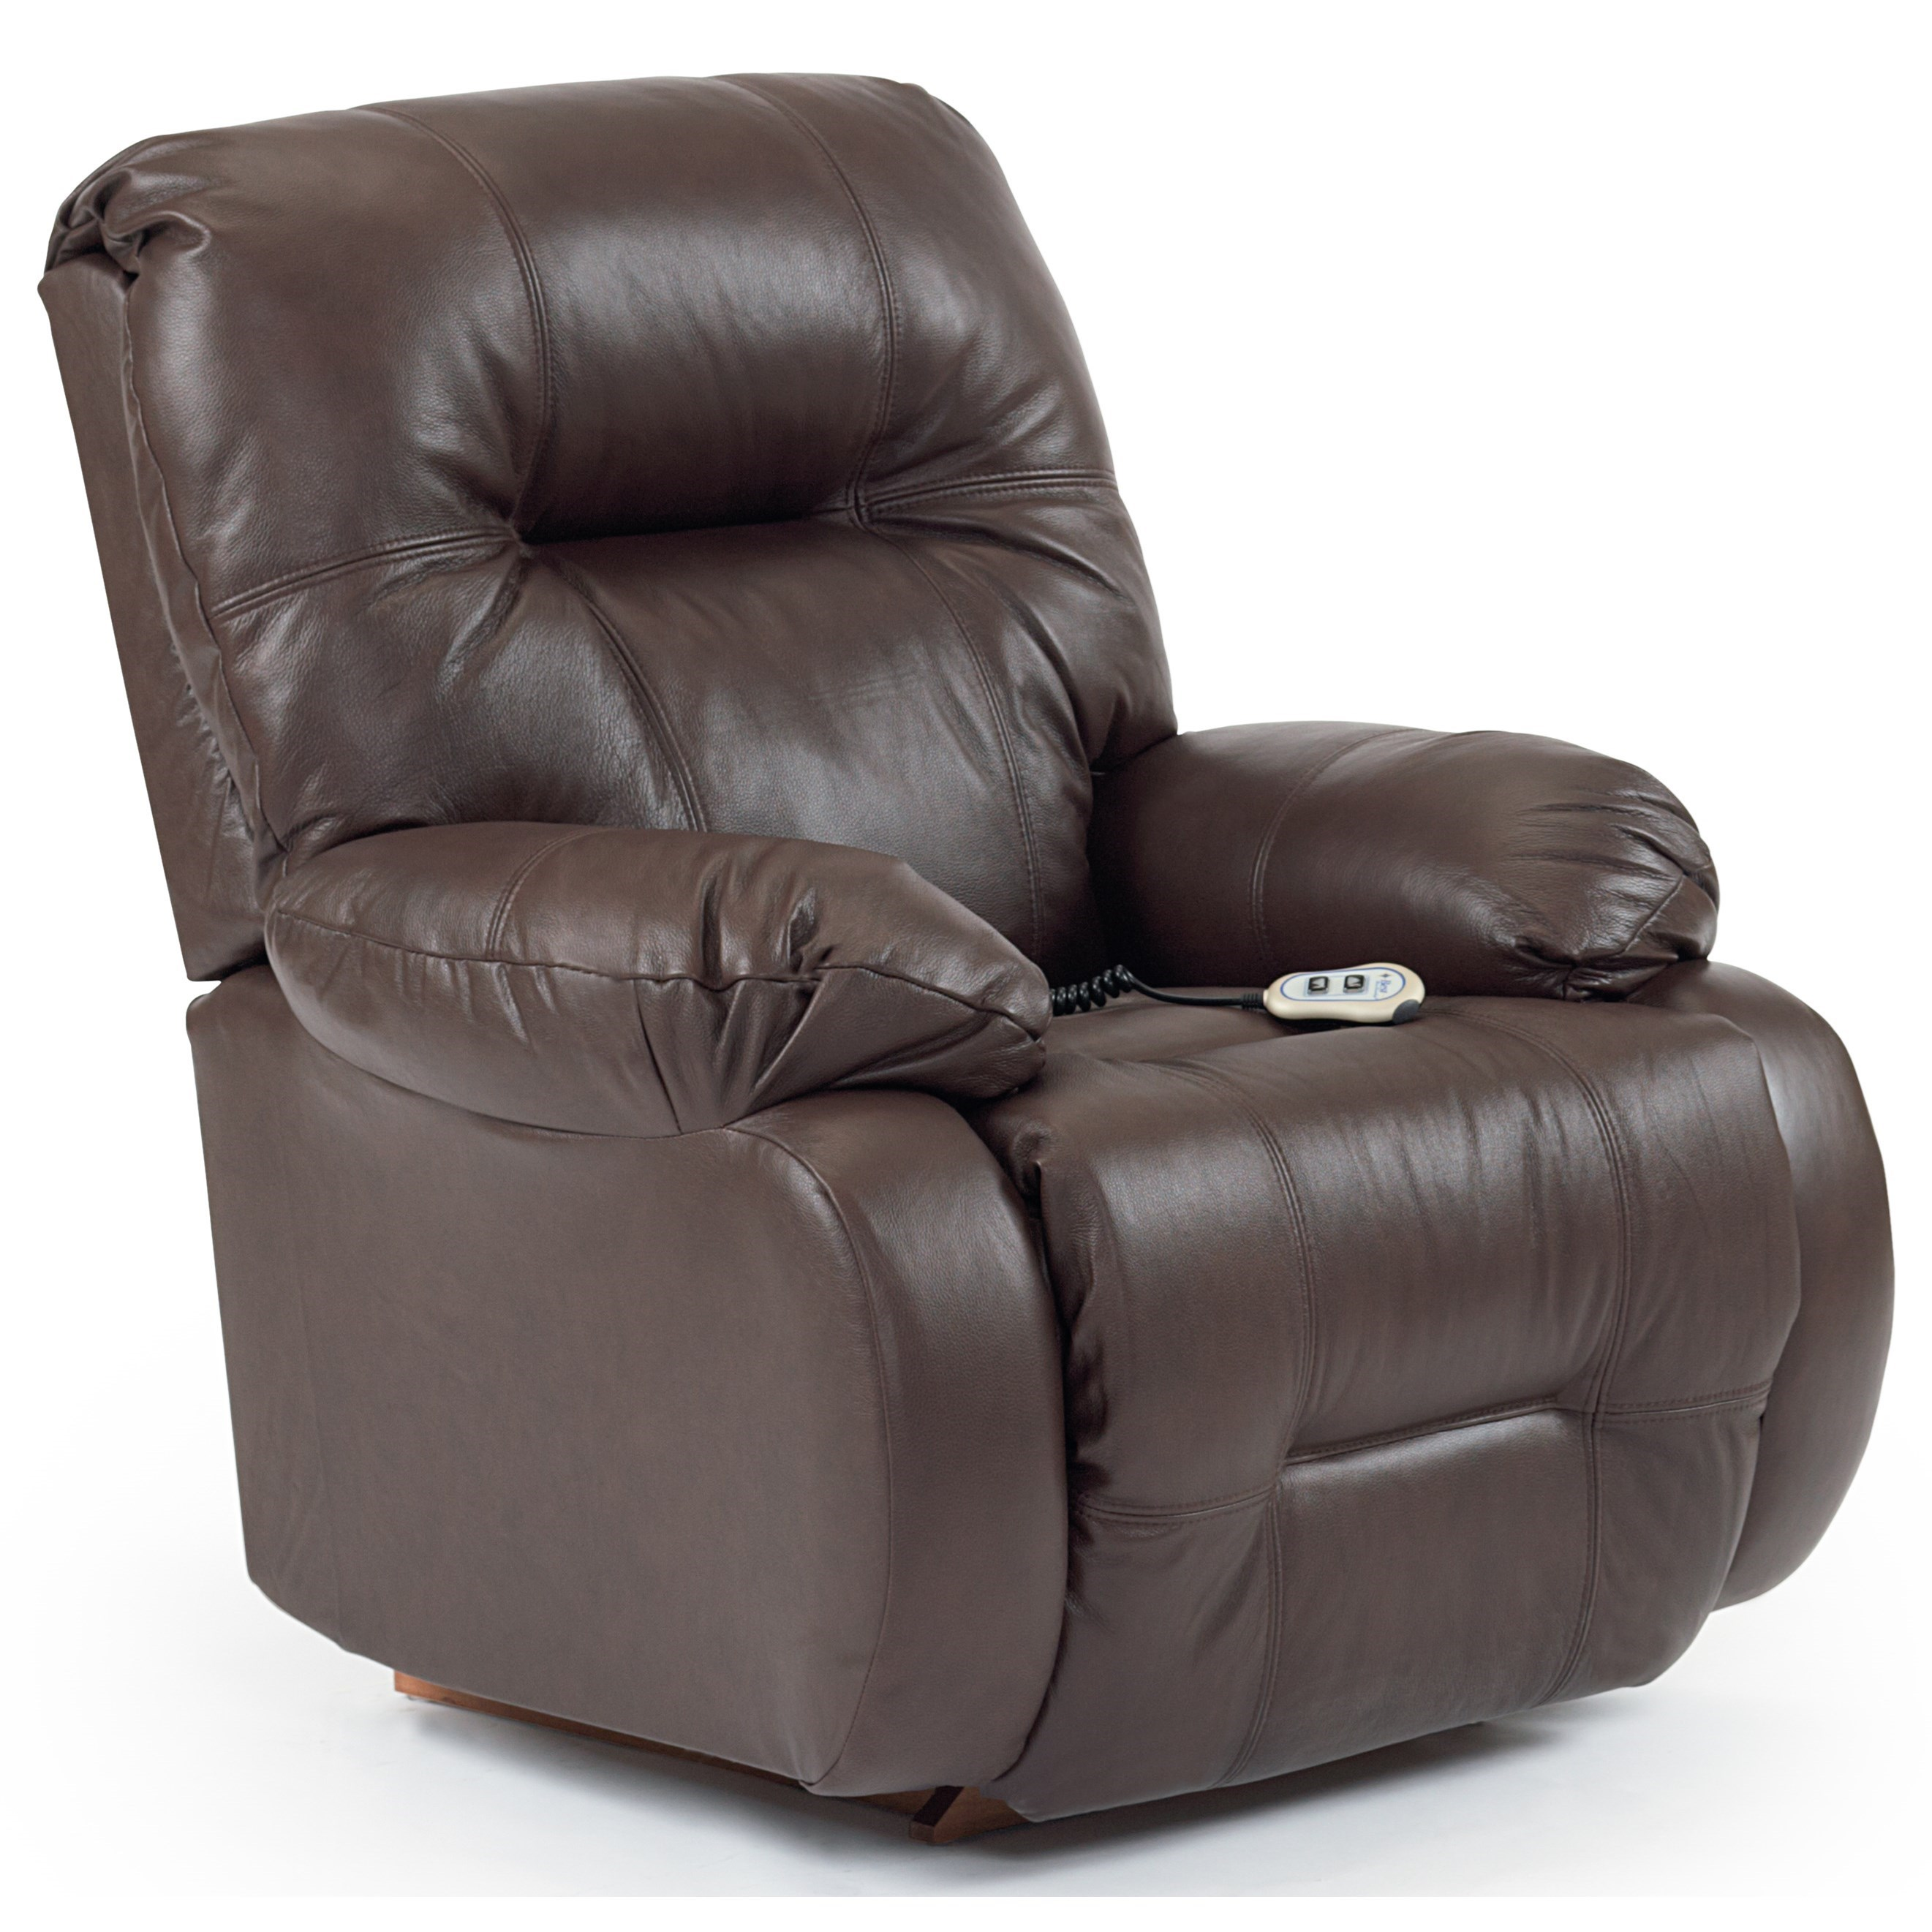 Best Home Furnishings Recliners Medium Brinley Power